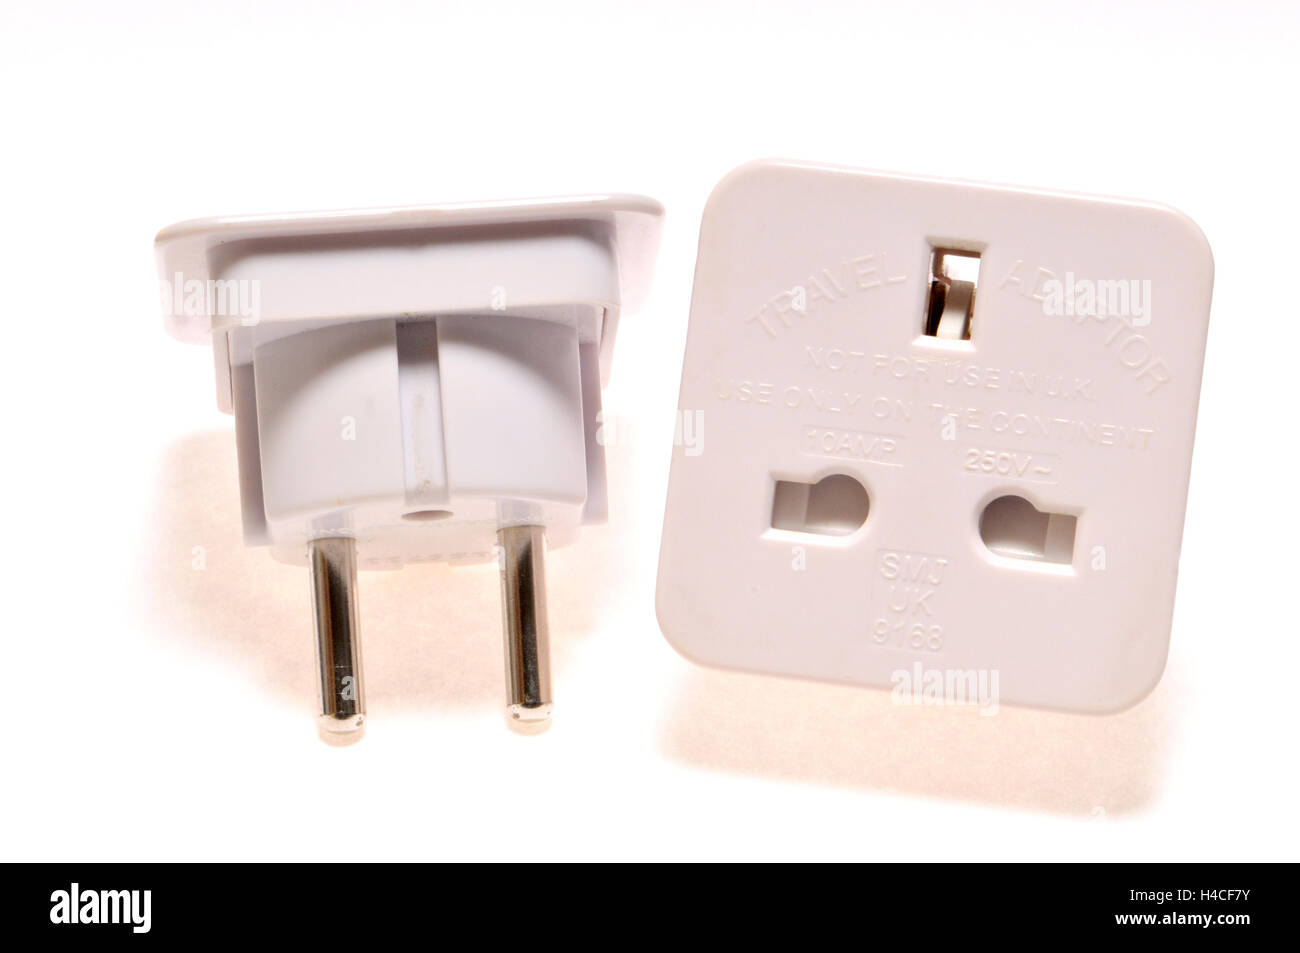 Travel plug adapter - for using a three pin UK plug in a two pin European socket - Stock Image